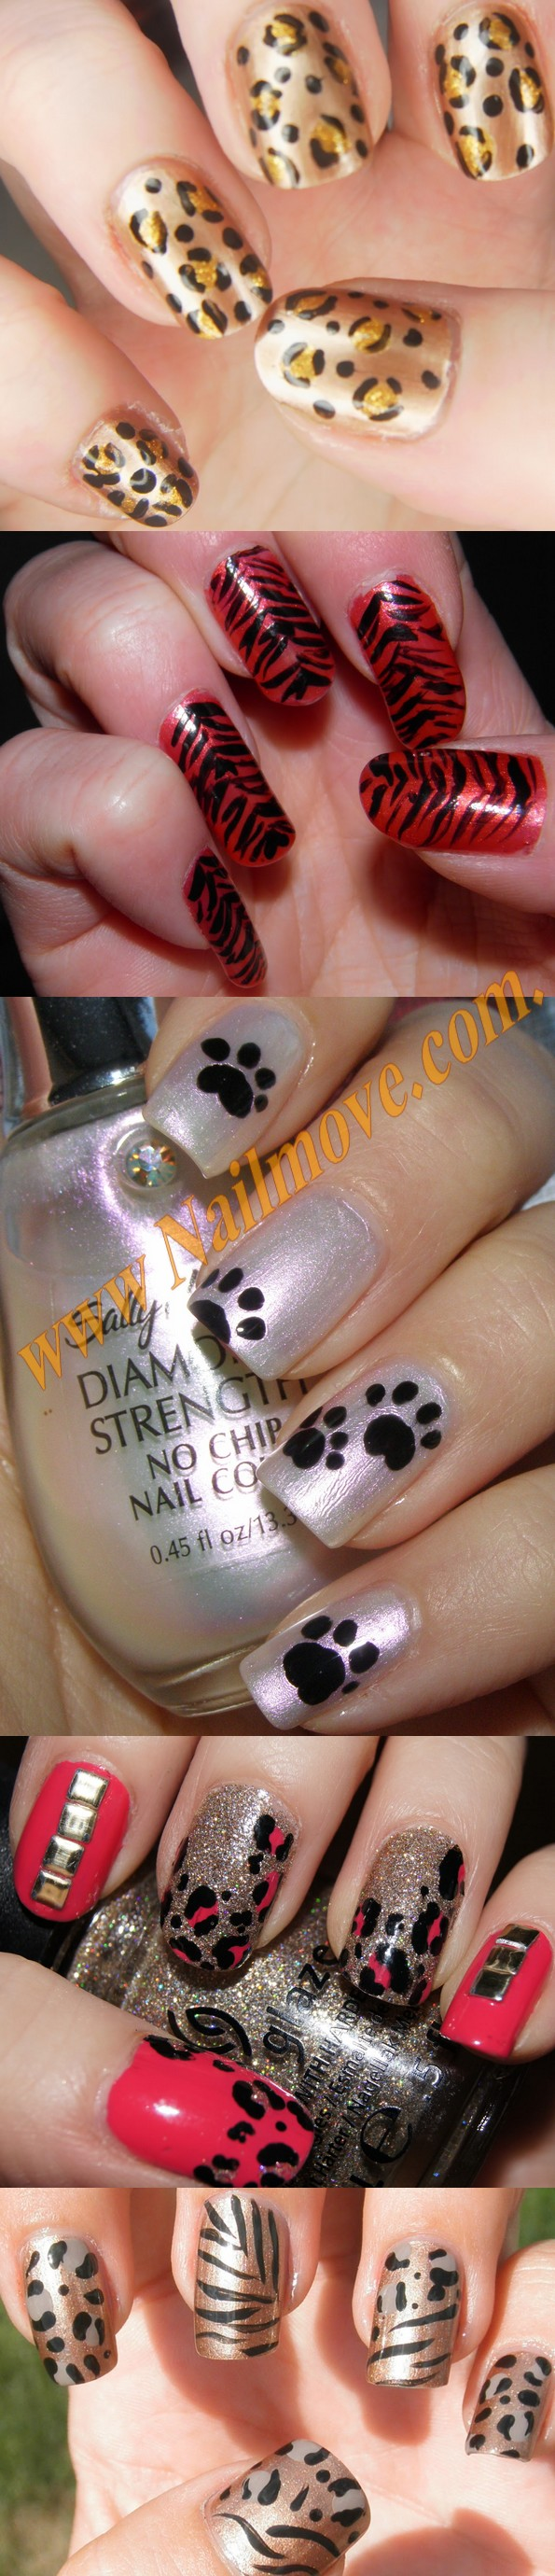 Nail art designs newspaper, easy nail art designs, migi nail art designs, pinterest nail art designs, nail art designs 101, nail art designs instagram,